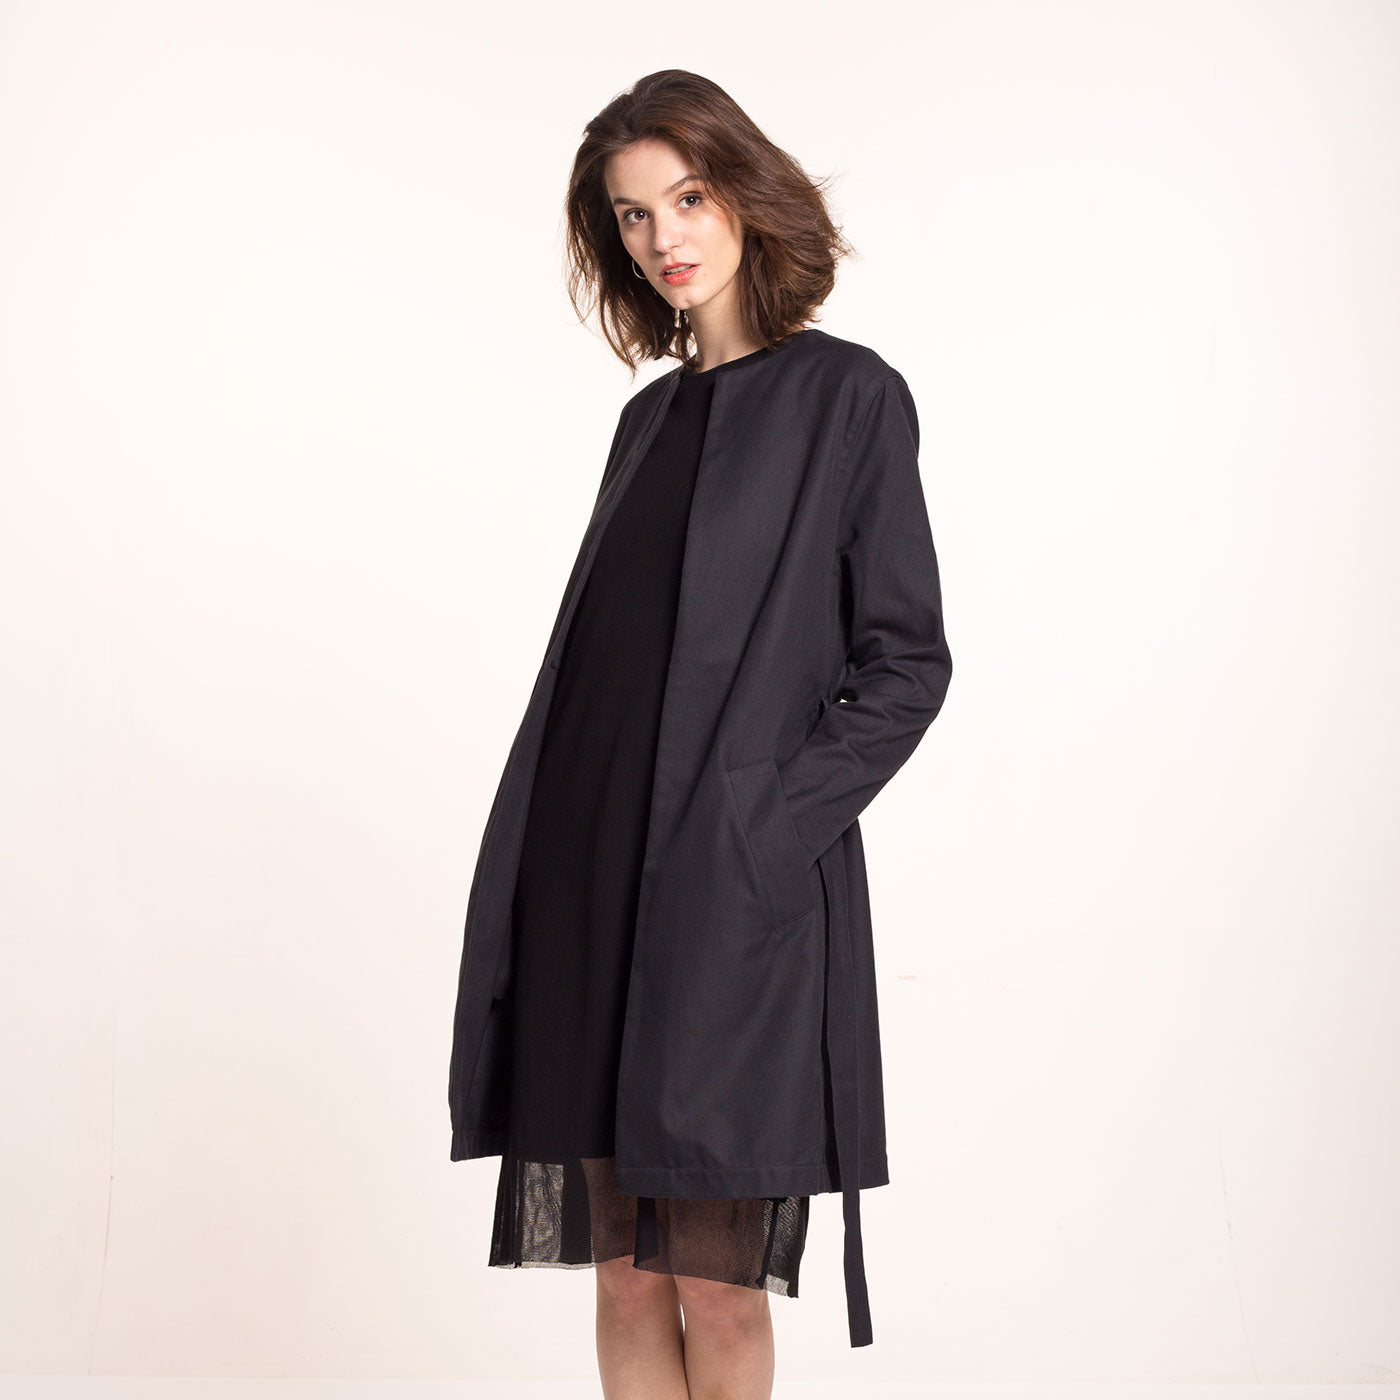 The model wears a black, sustainable cotton coat, with round neckline, straight fit and a belt, over a black dress..